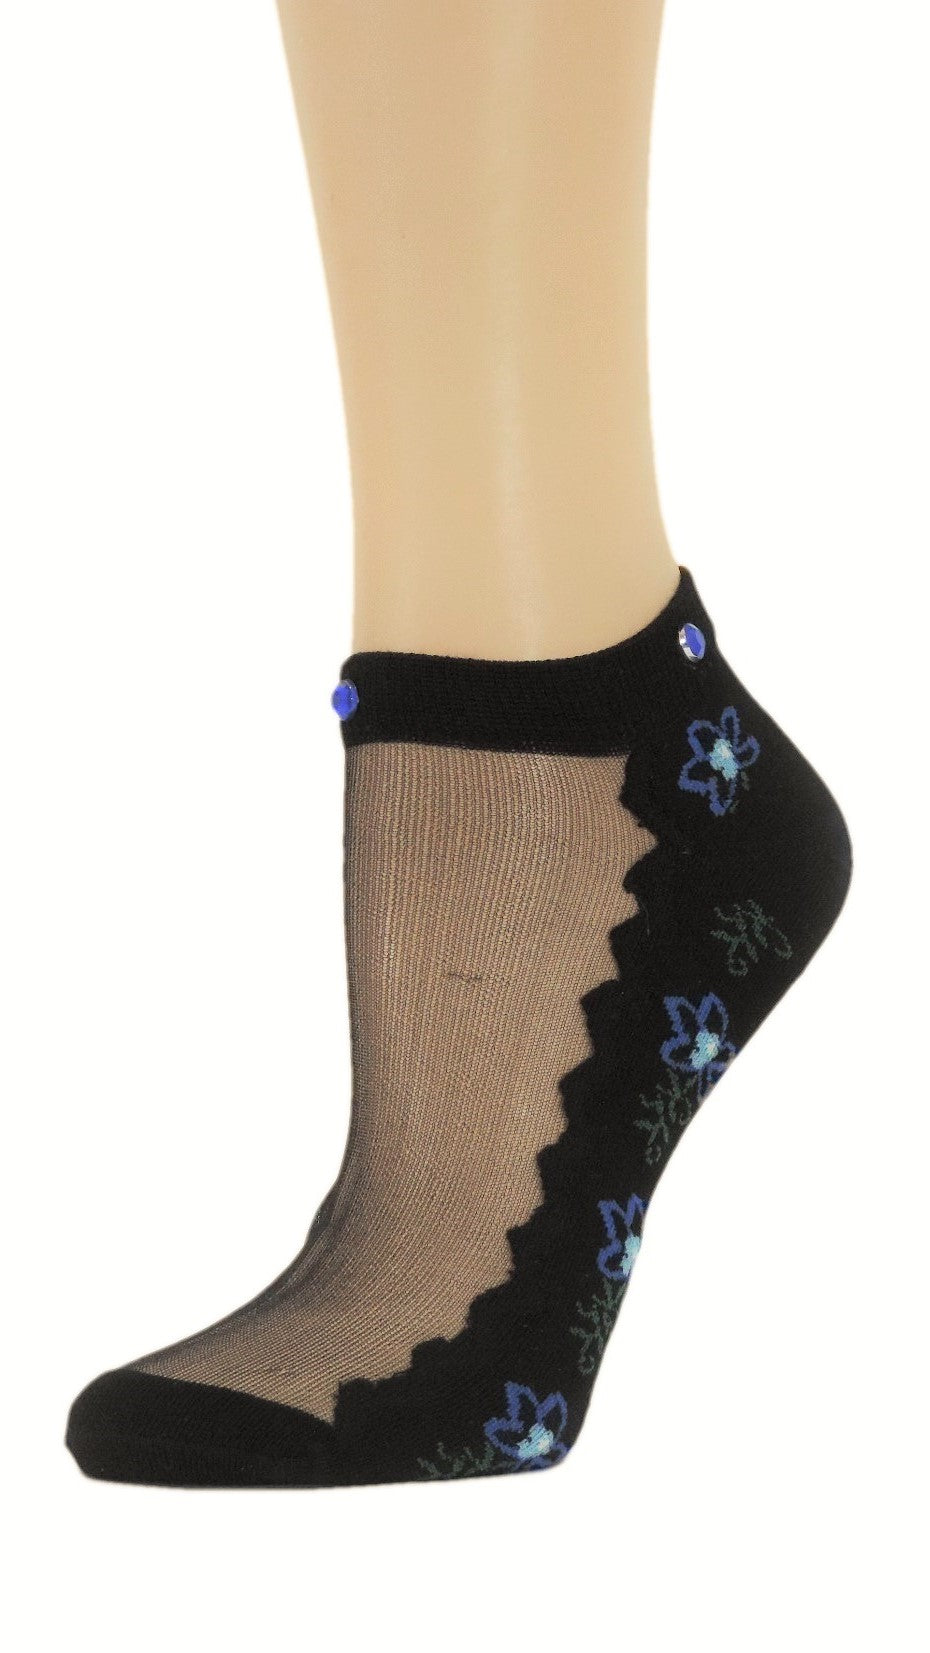 Charming Sea Blue Custom Ankle Sheer Socks with beads - Global Trendz Fashion®